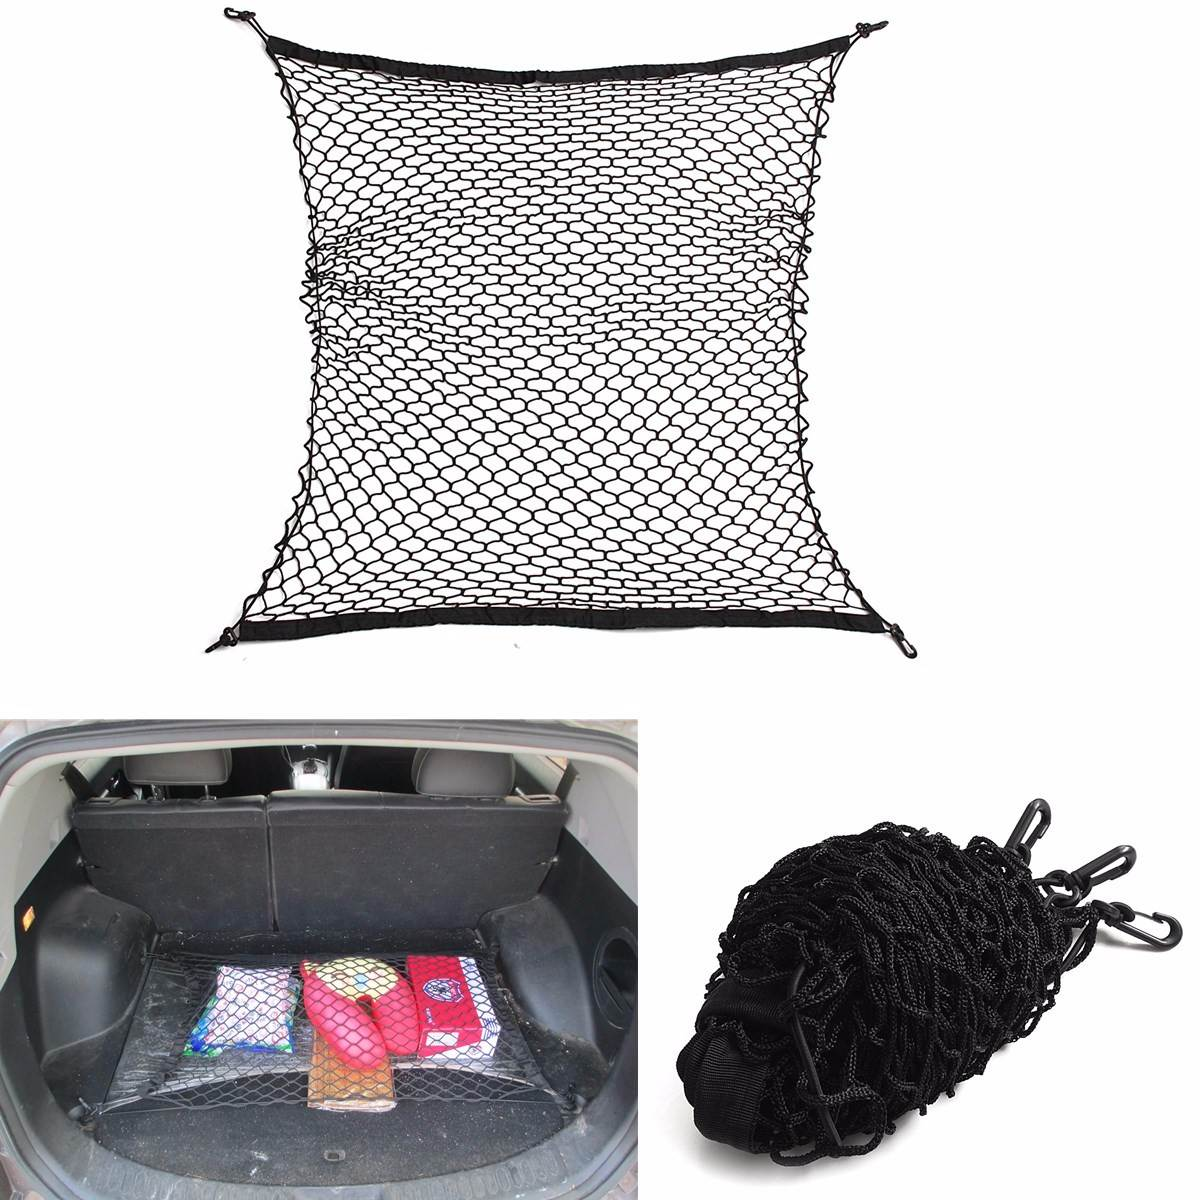 100x100cm Universal Car Seat Back Storage Mesh Net Rear Cargo Trunk Storage Organizer Luggage Swing Mesh Nets Holder airborne pollen allergy